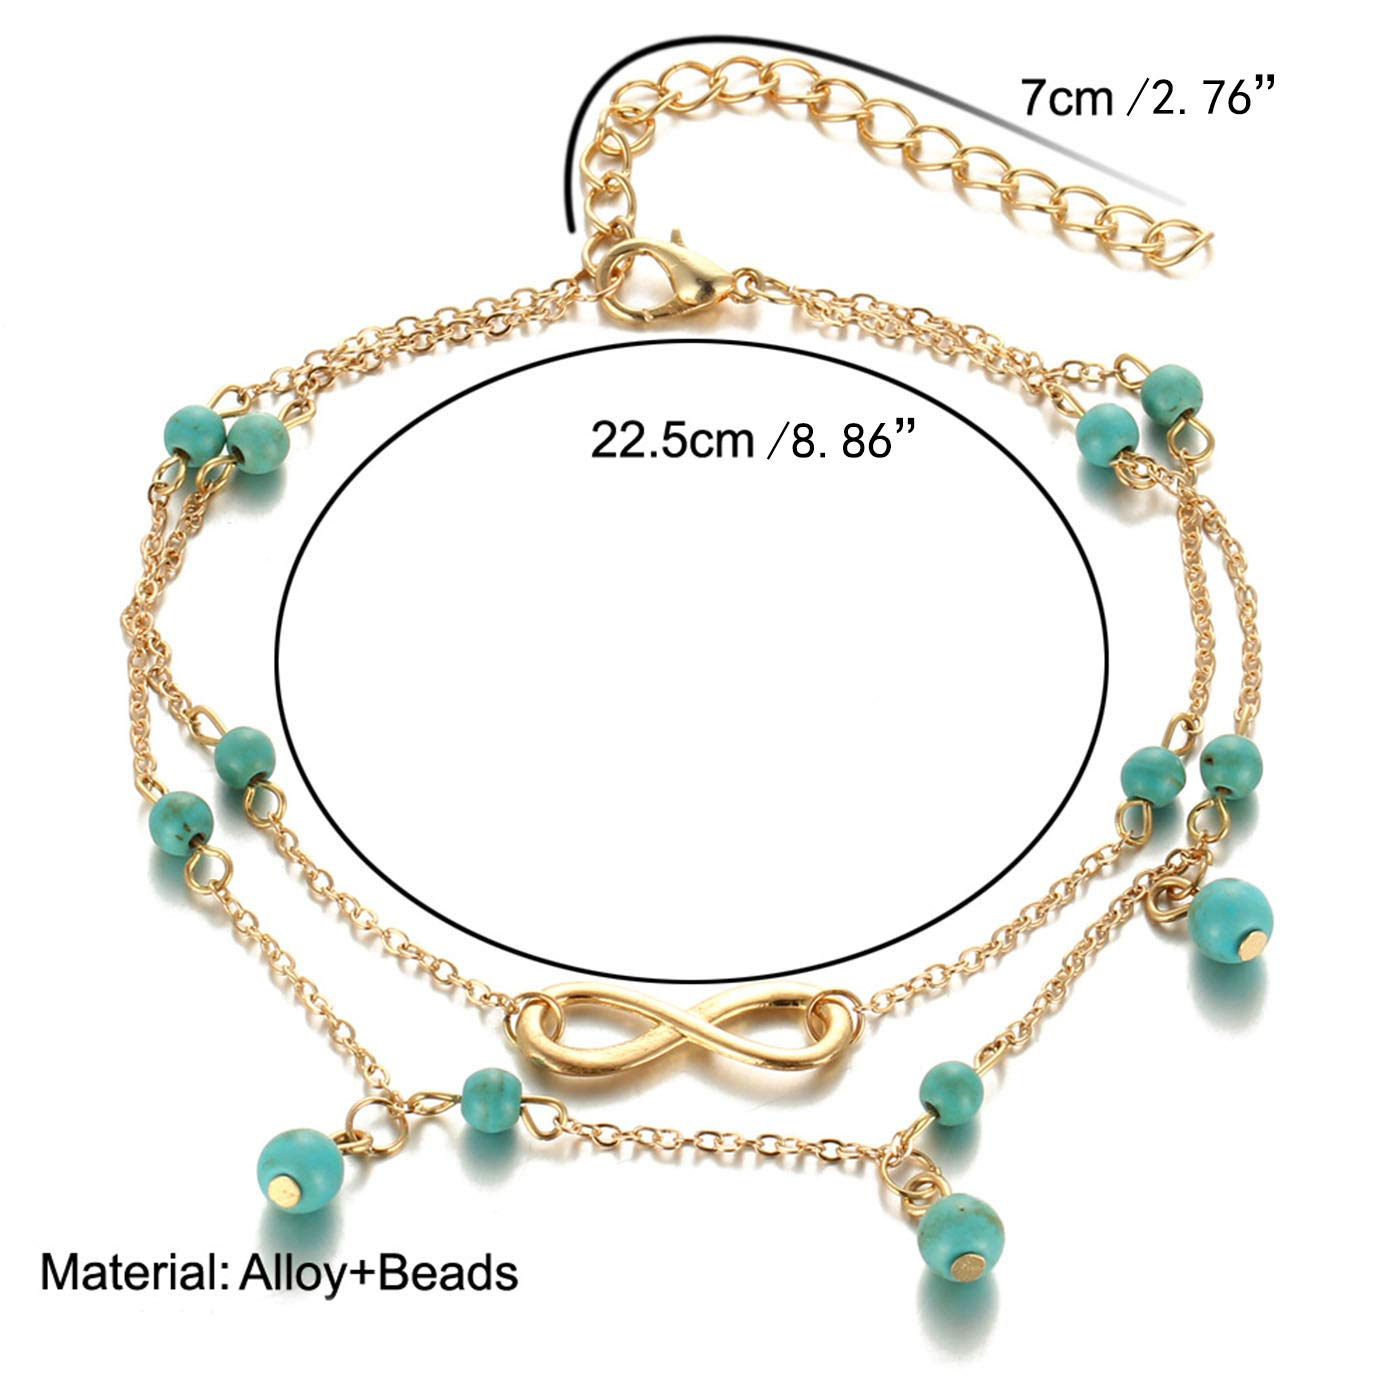 ZLY Boho Beads Sea Infinity Anklets for Women Charm Turquoise Foot Chain Gift for Mothers Day Adjustable Beach Pearl Anklet Bracelet for Girls